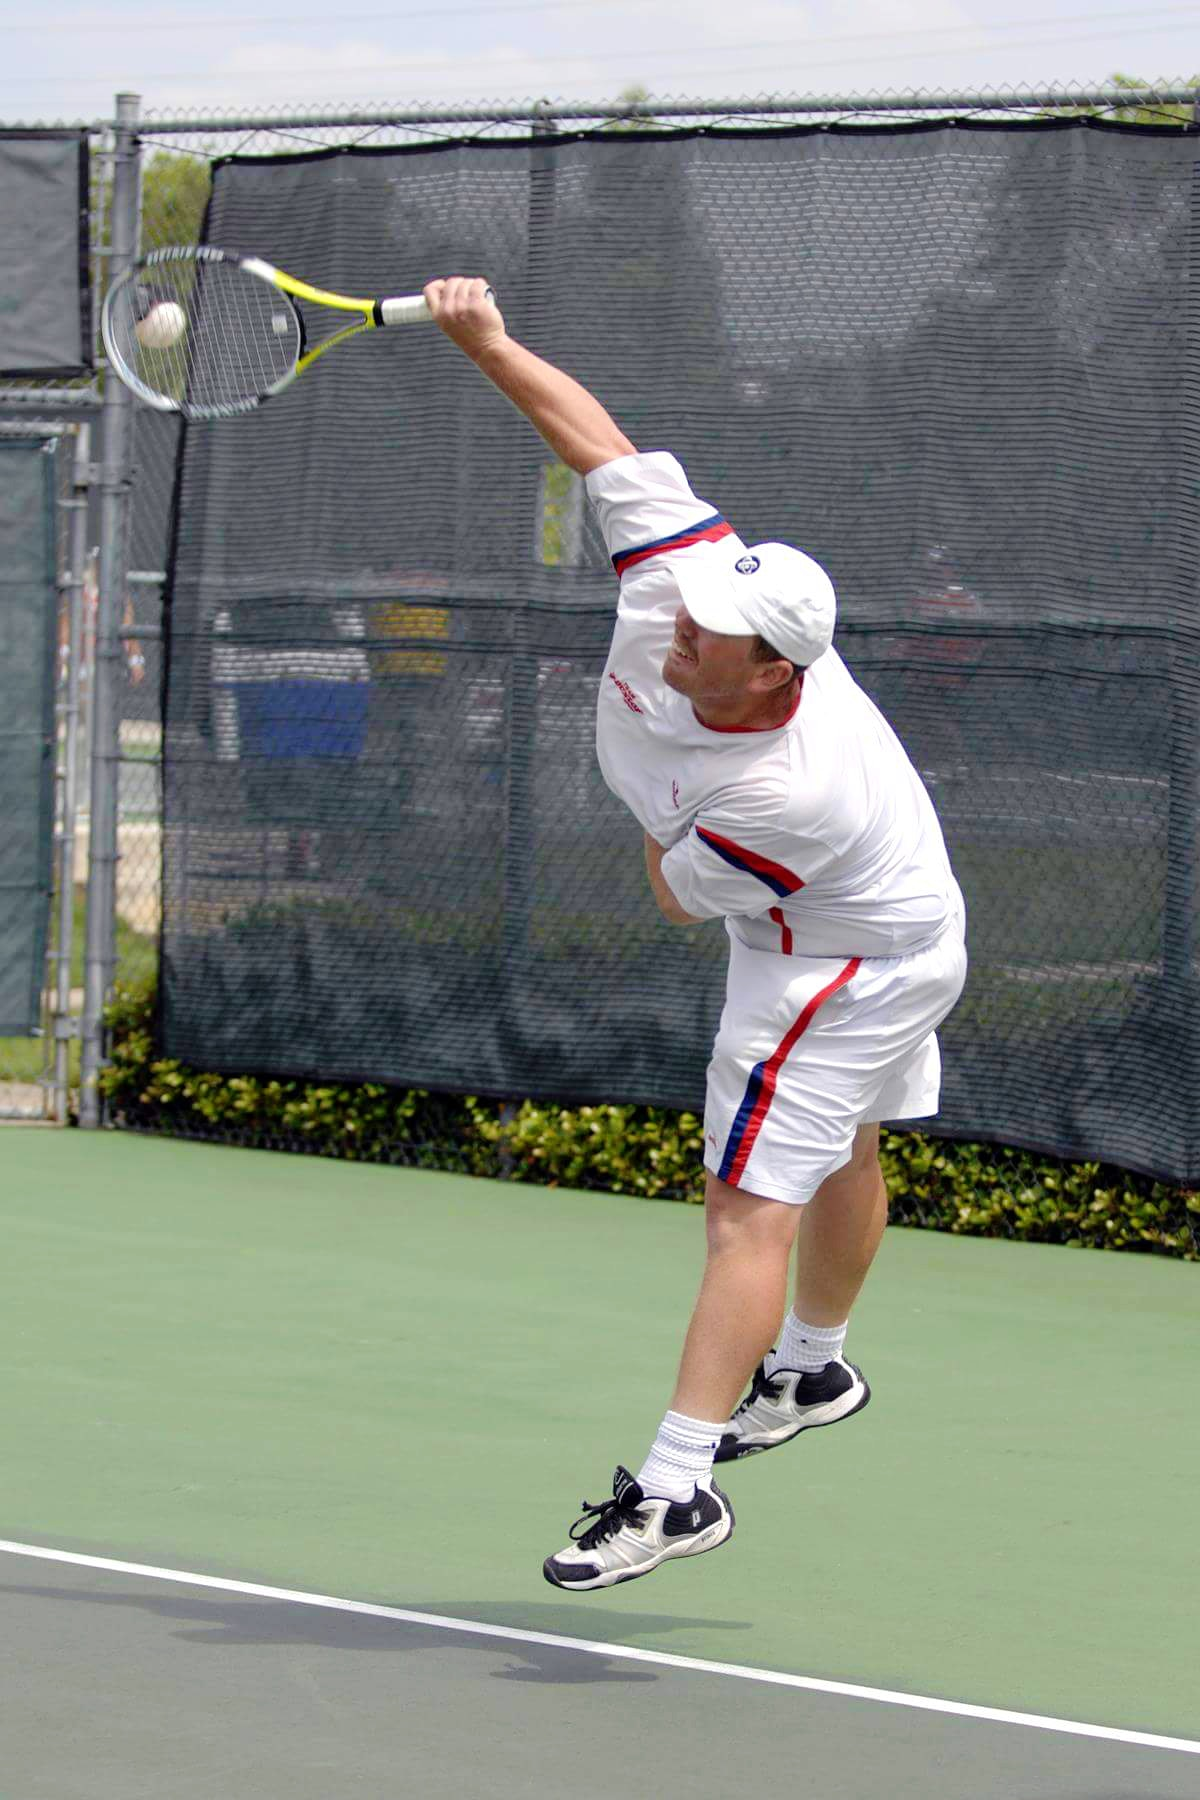 Greg Z. teaches tennis lessons in Magnolia , TX